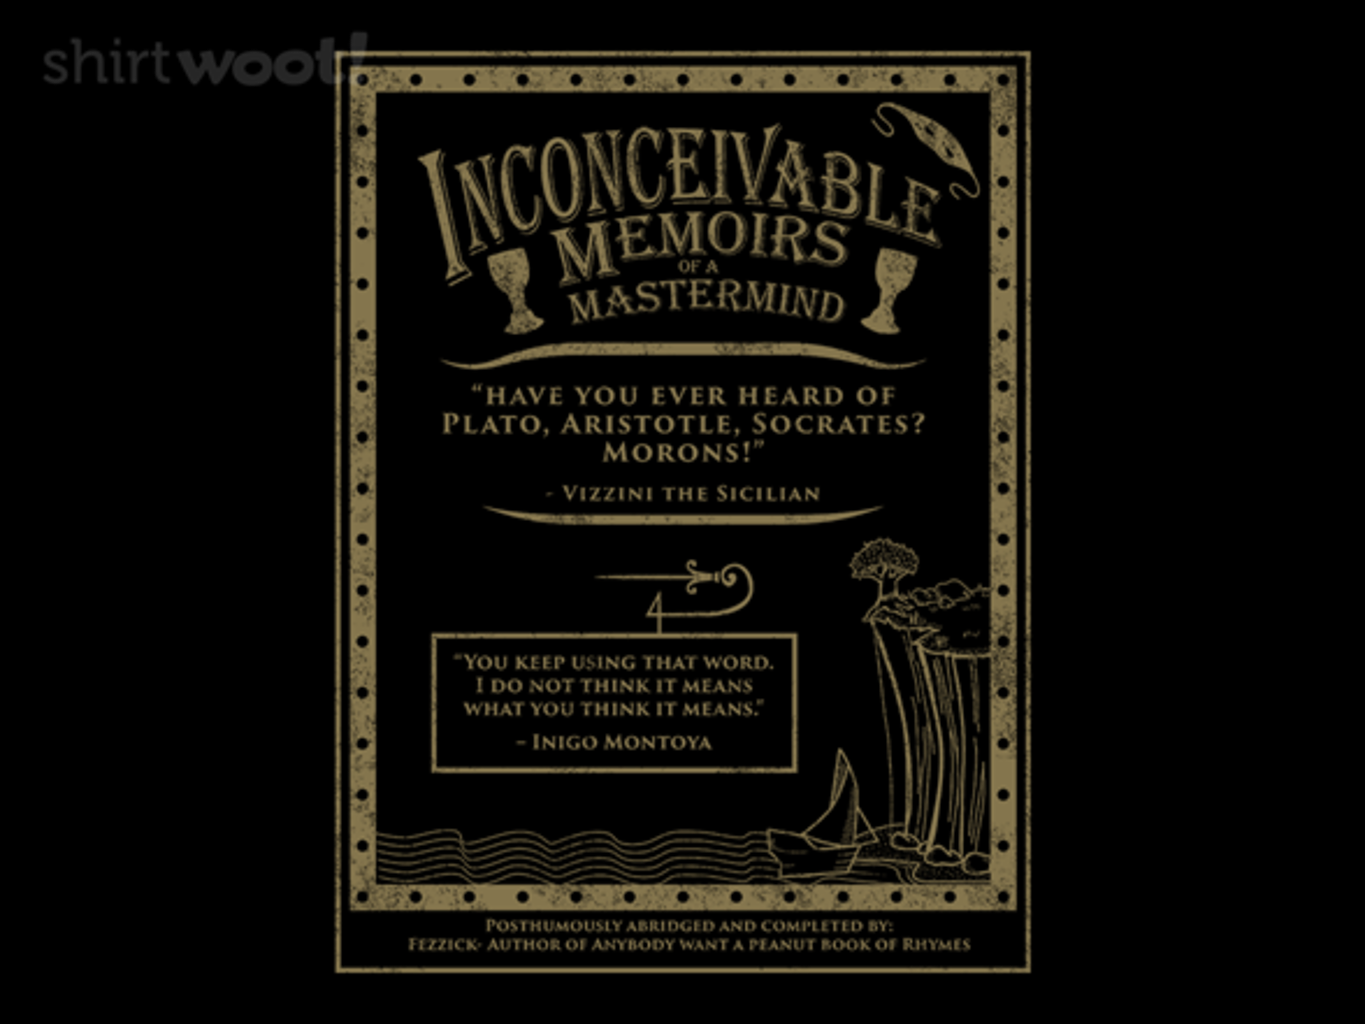 Woot!: The Inconceivable Book